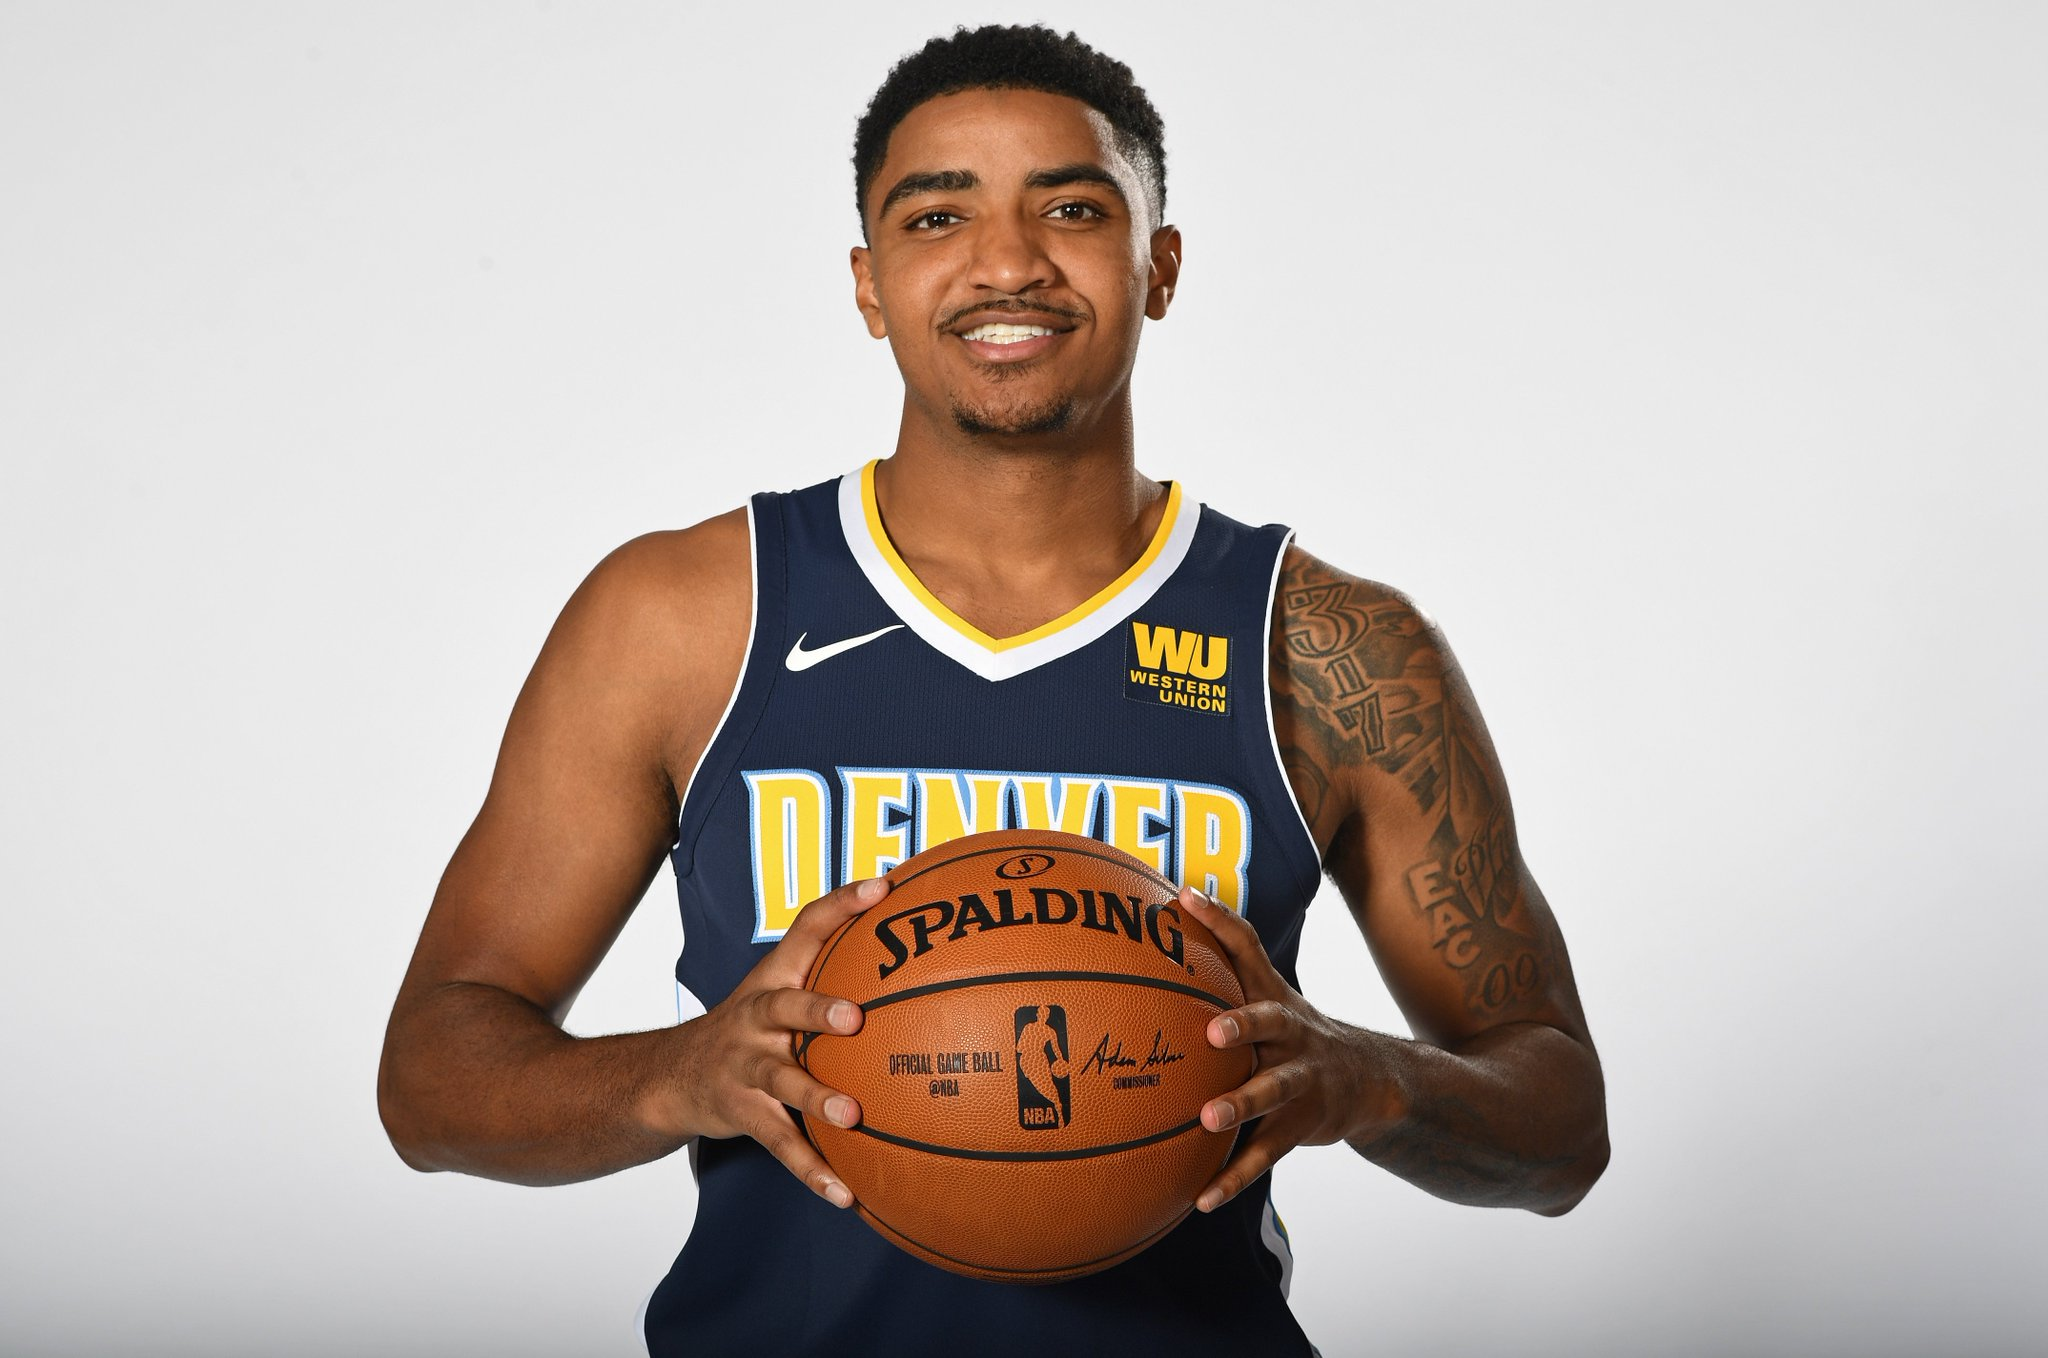 Join us in wishing @thats_G_ of the @nuggets a HAPPY 23rd BIRTHDAY! #NBABDAY https://t.co/hEjffg4r1i